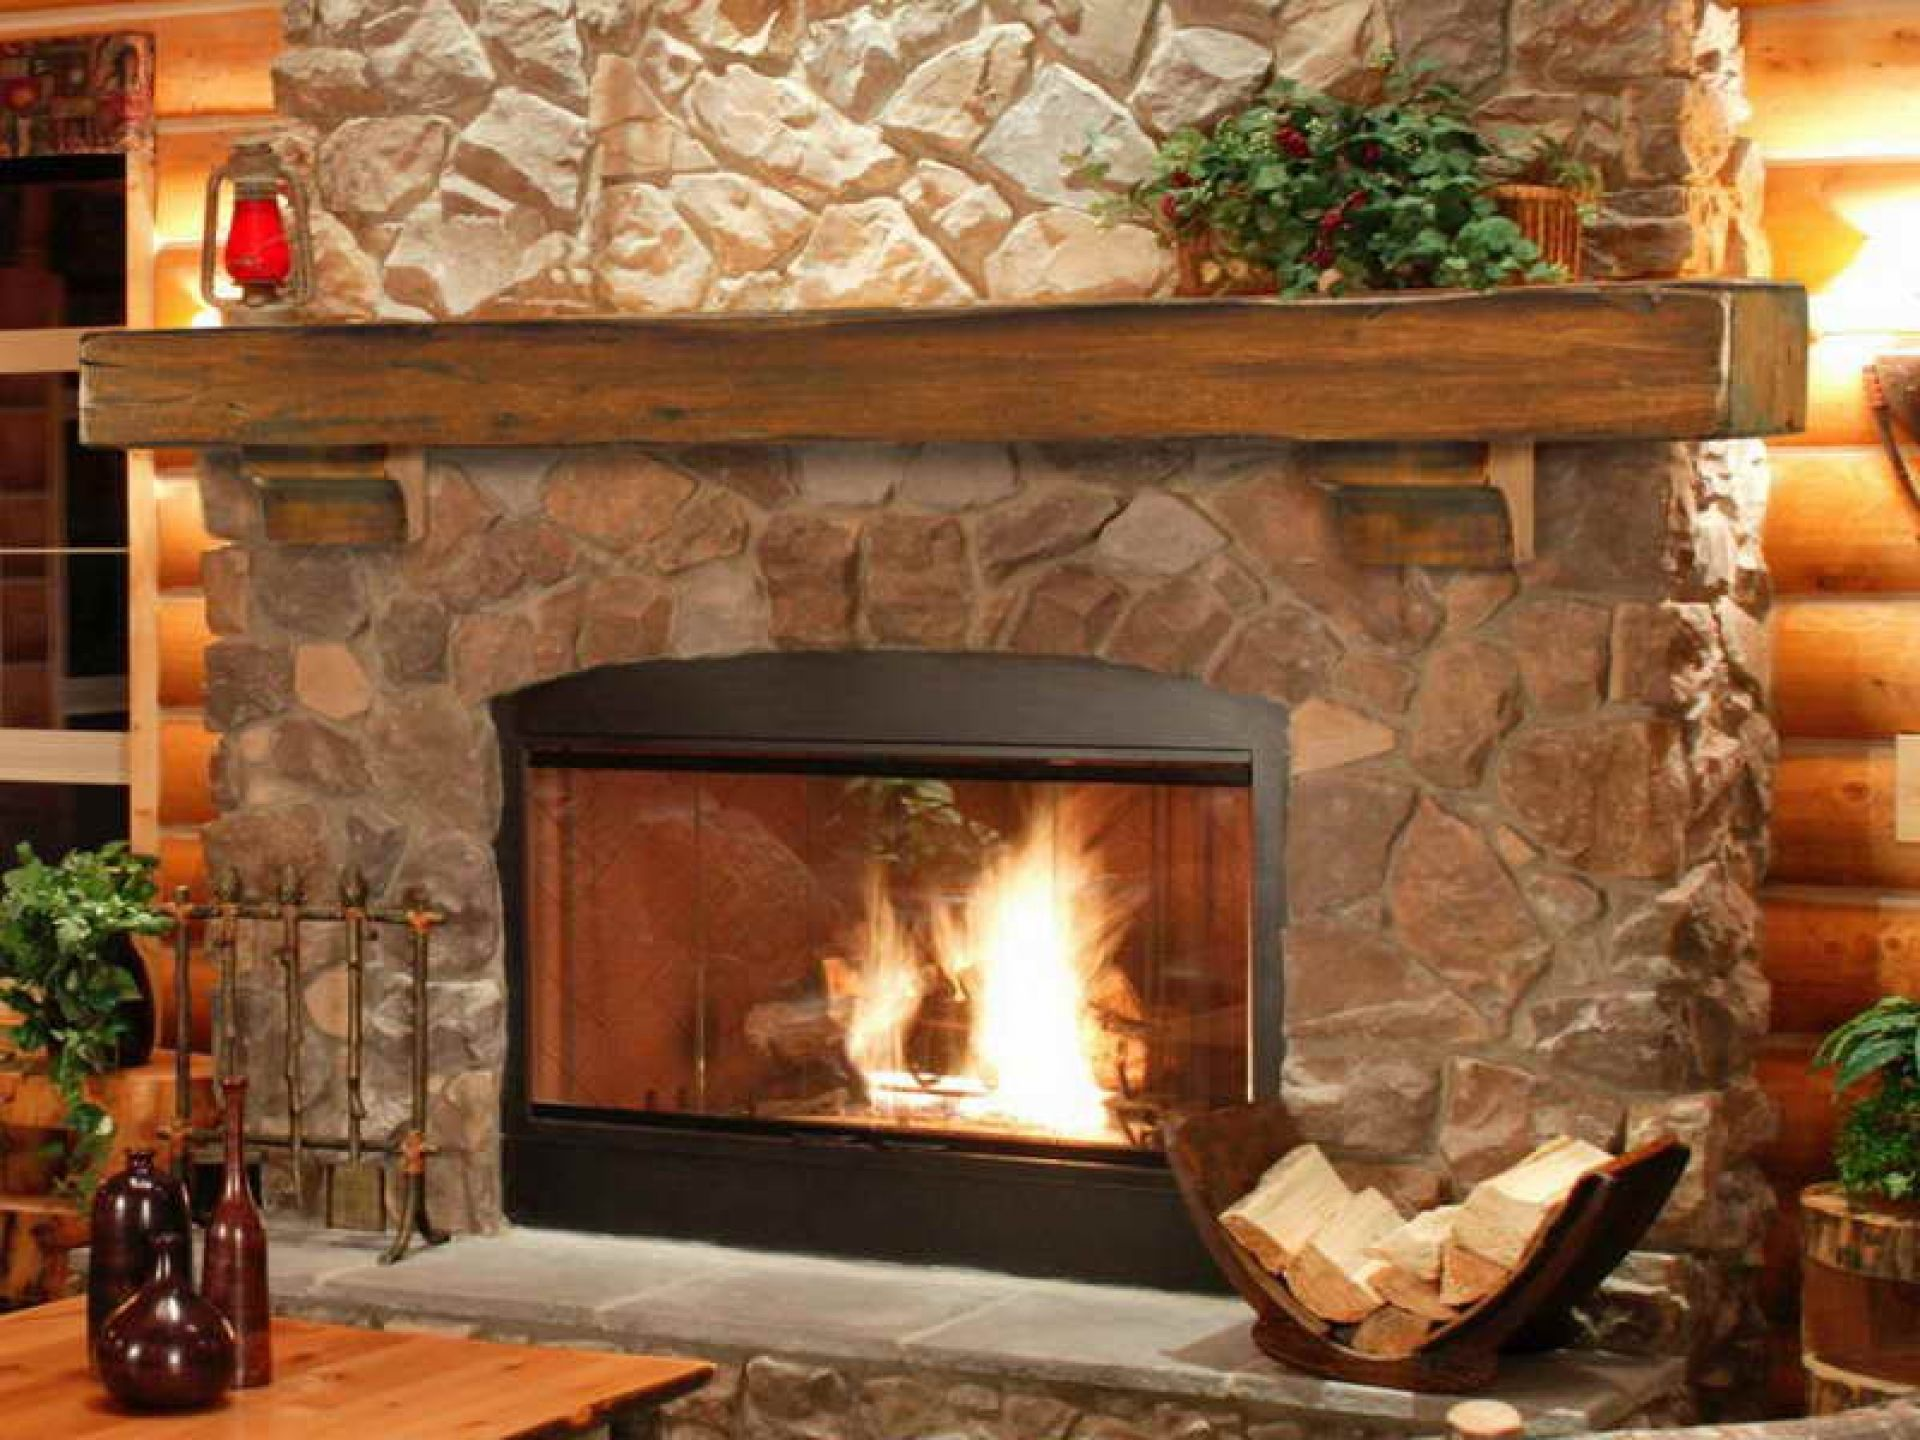 Cool Stone Fireplace Mantels For Interior Design Natural Stone Fireplace Mantels With Wood